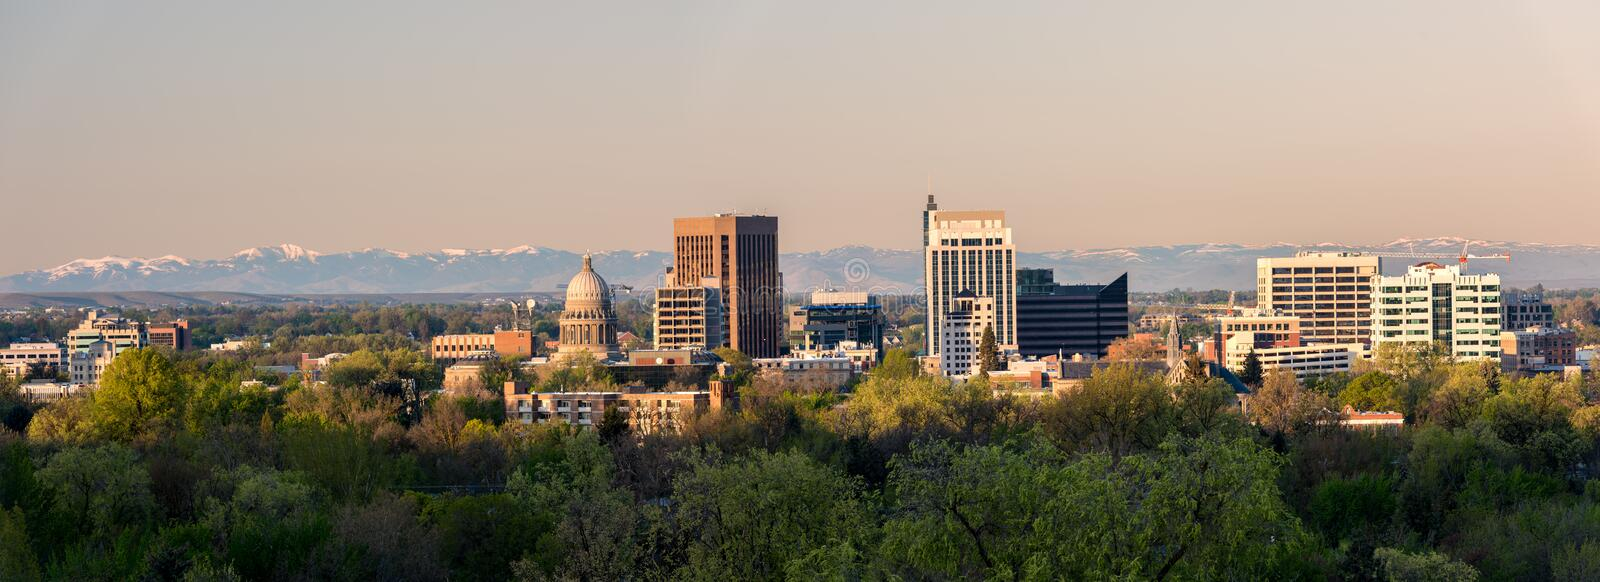 City of Boise Idaho in morning light stock image